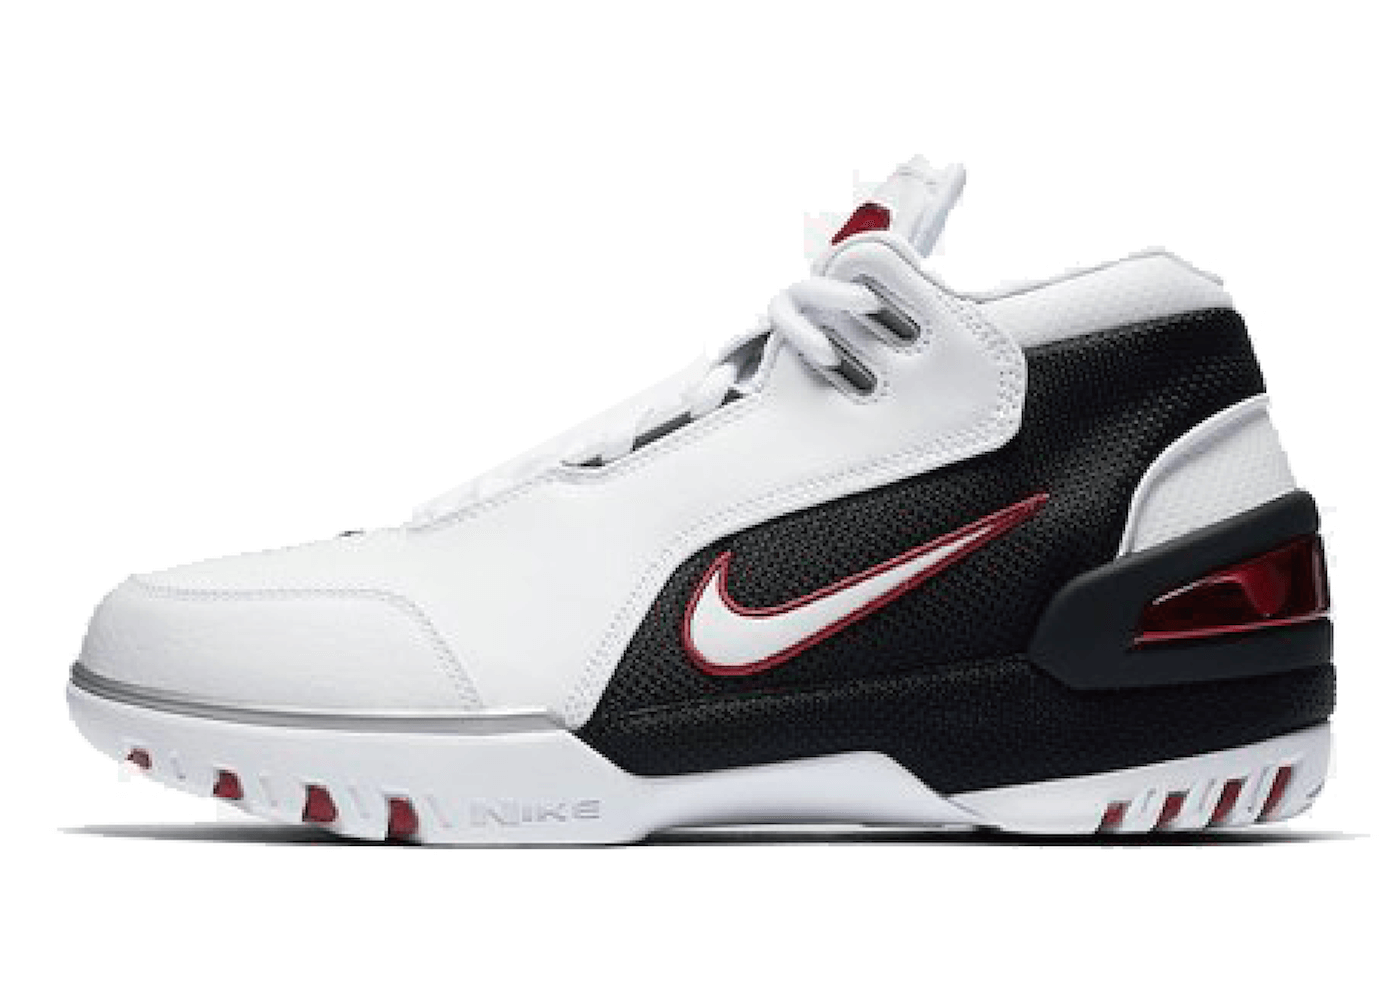 LeBron 1 Air Zoom Generation White Black Retroの写真